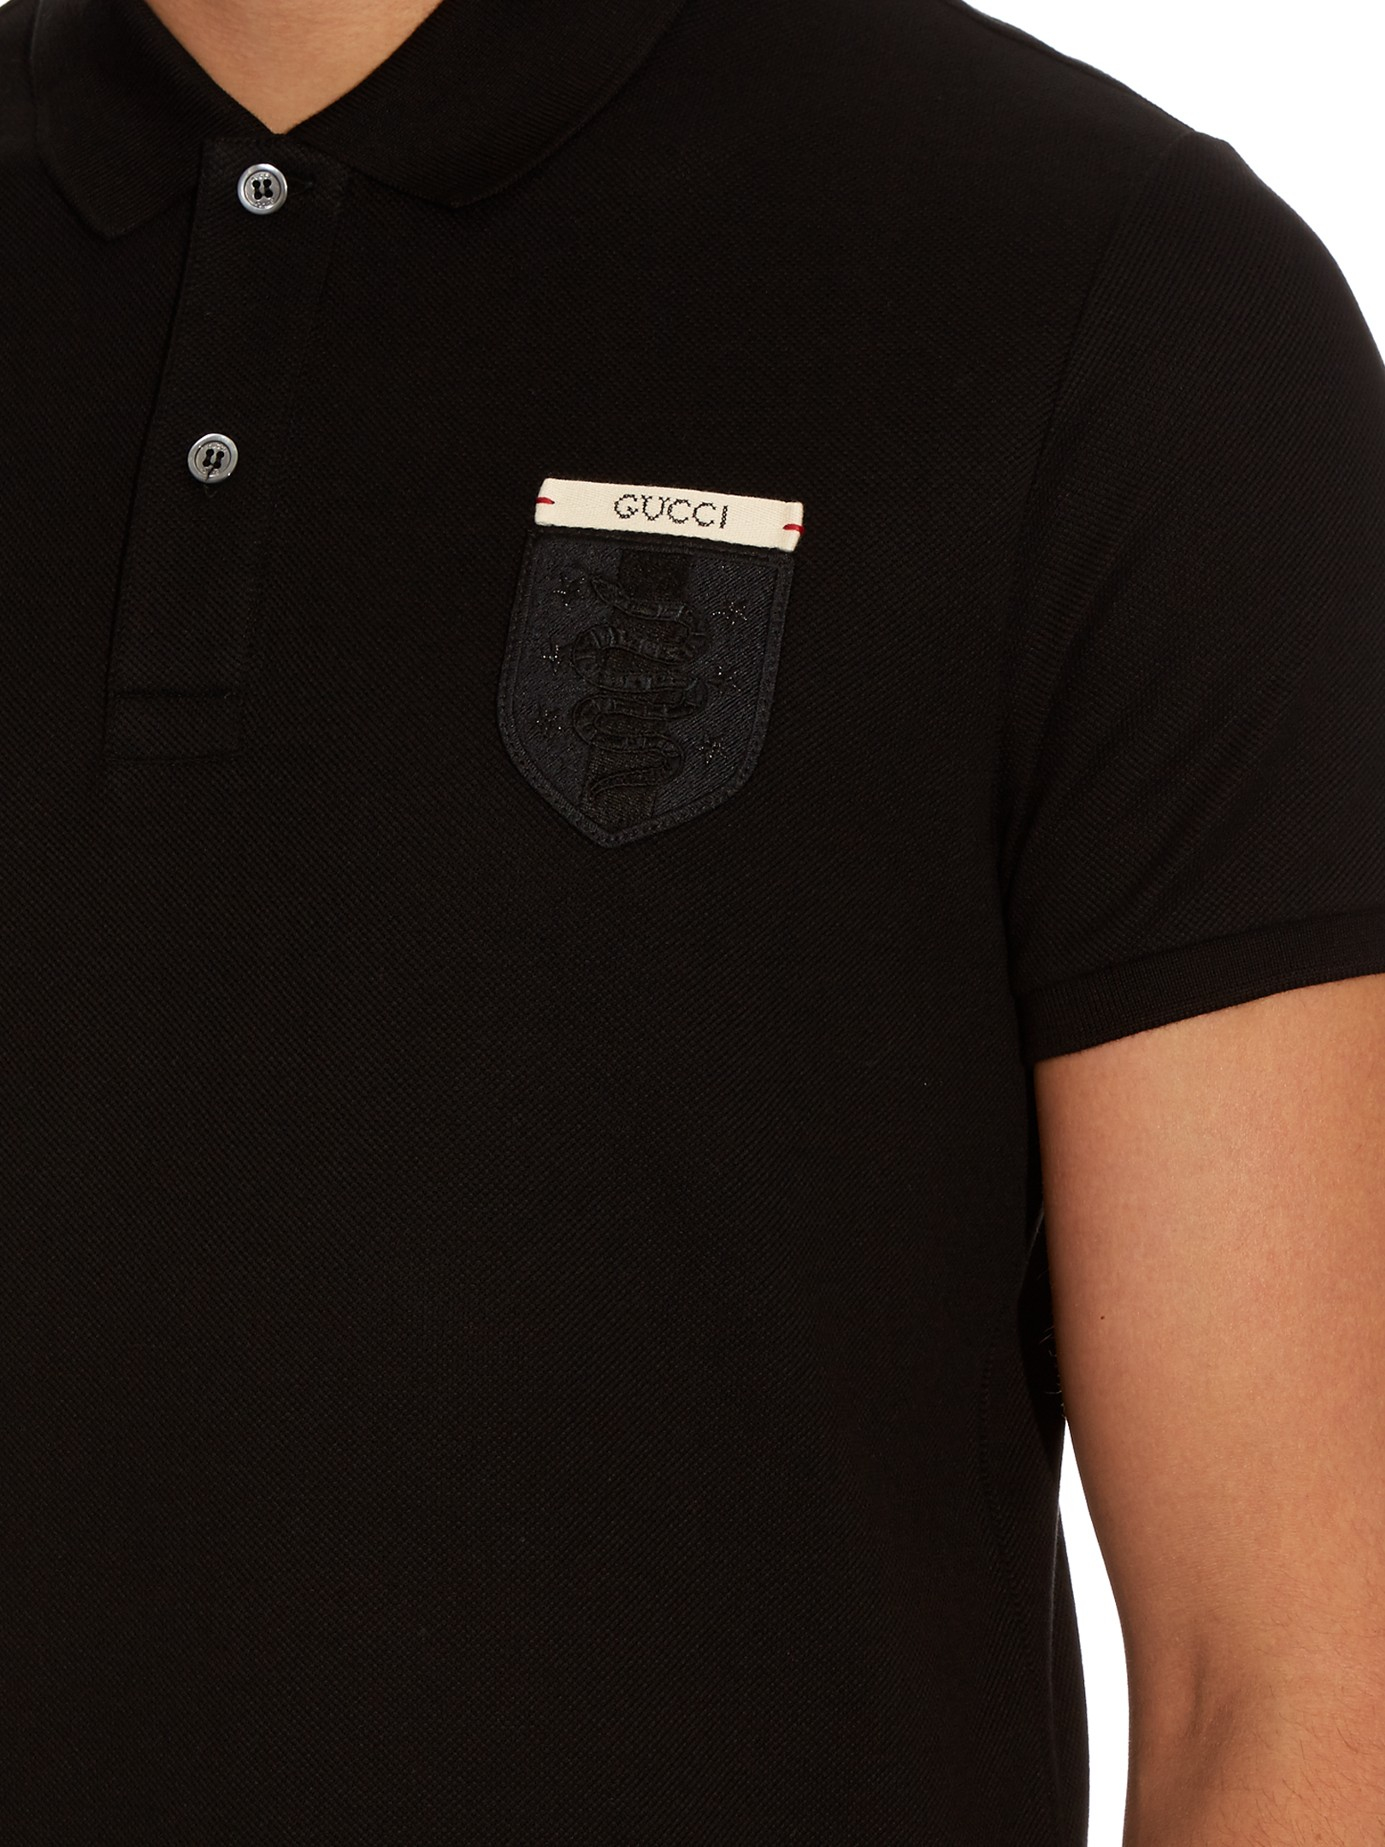 Lyst Gucci Snake Crest Cotton Blend Polo Shirt In Black For Men